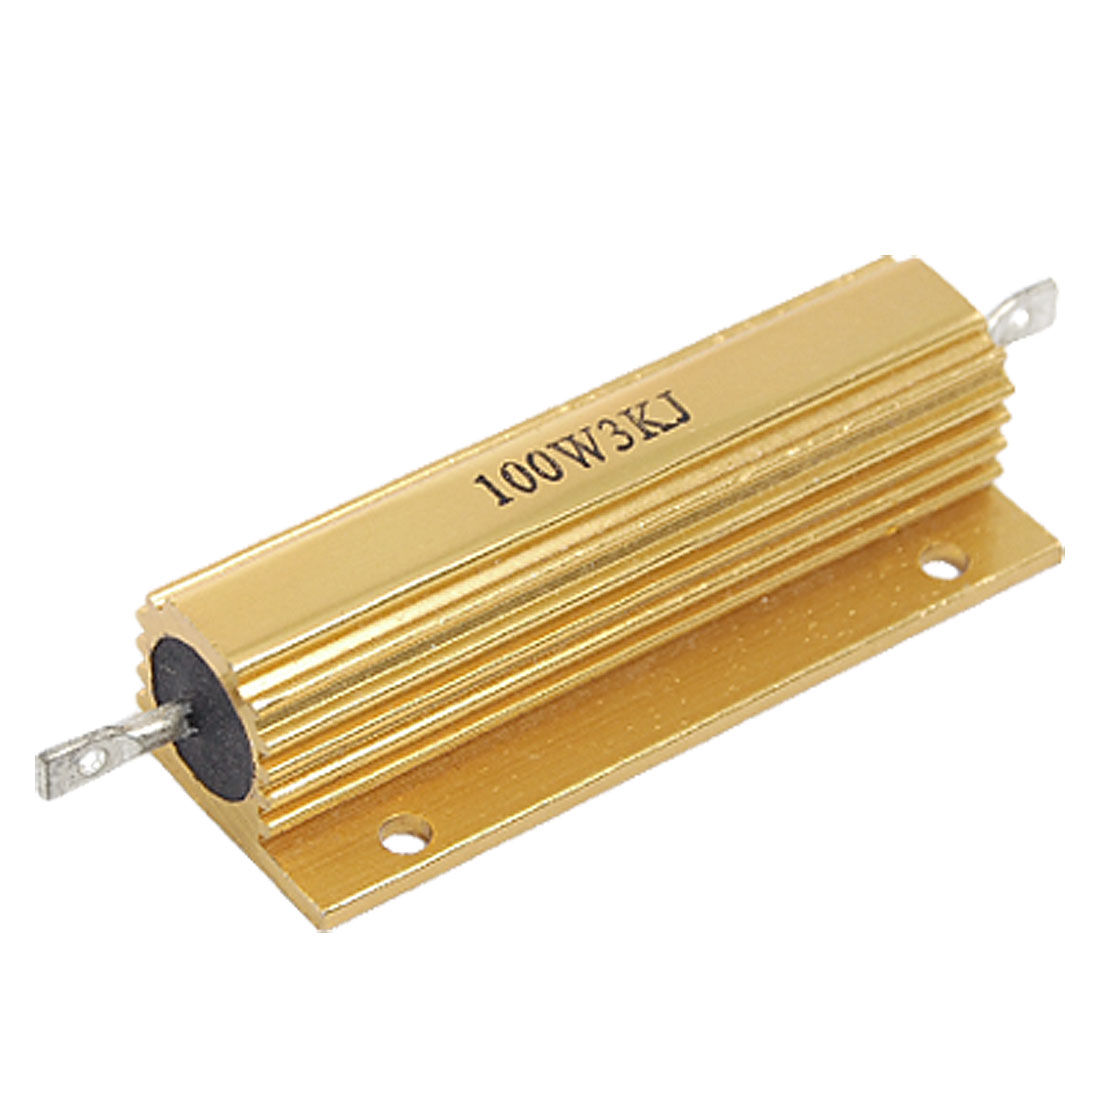 100W Power 3K Ohm 5% Aluminum Wire Wound Casing Resistor